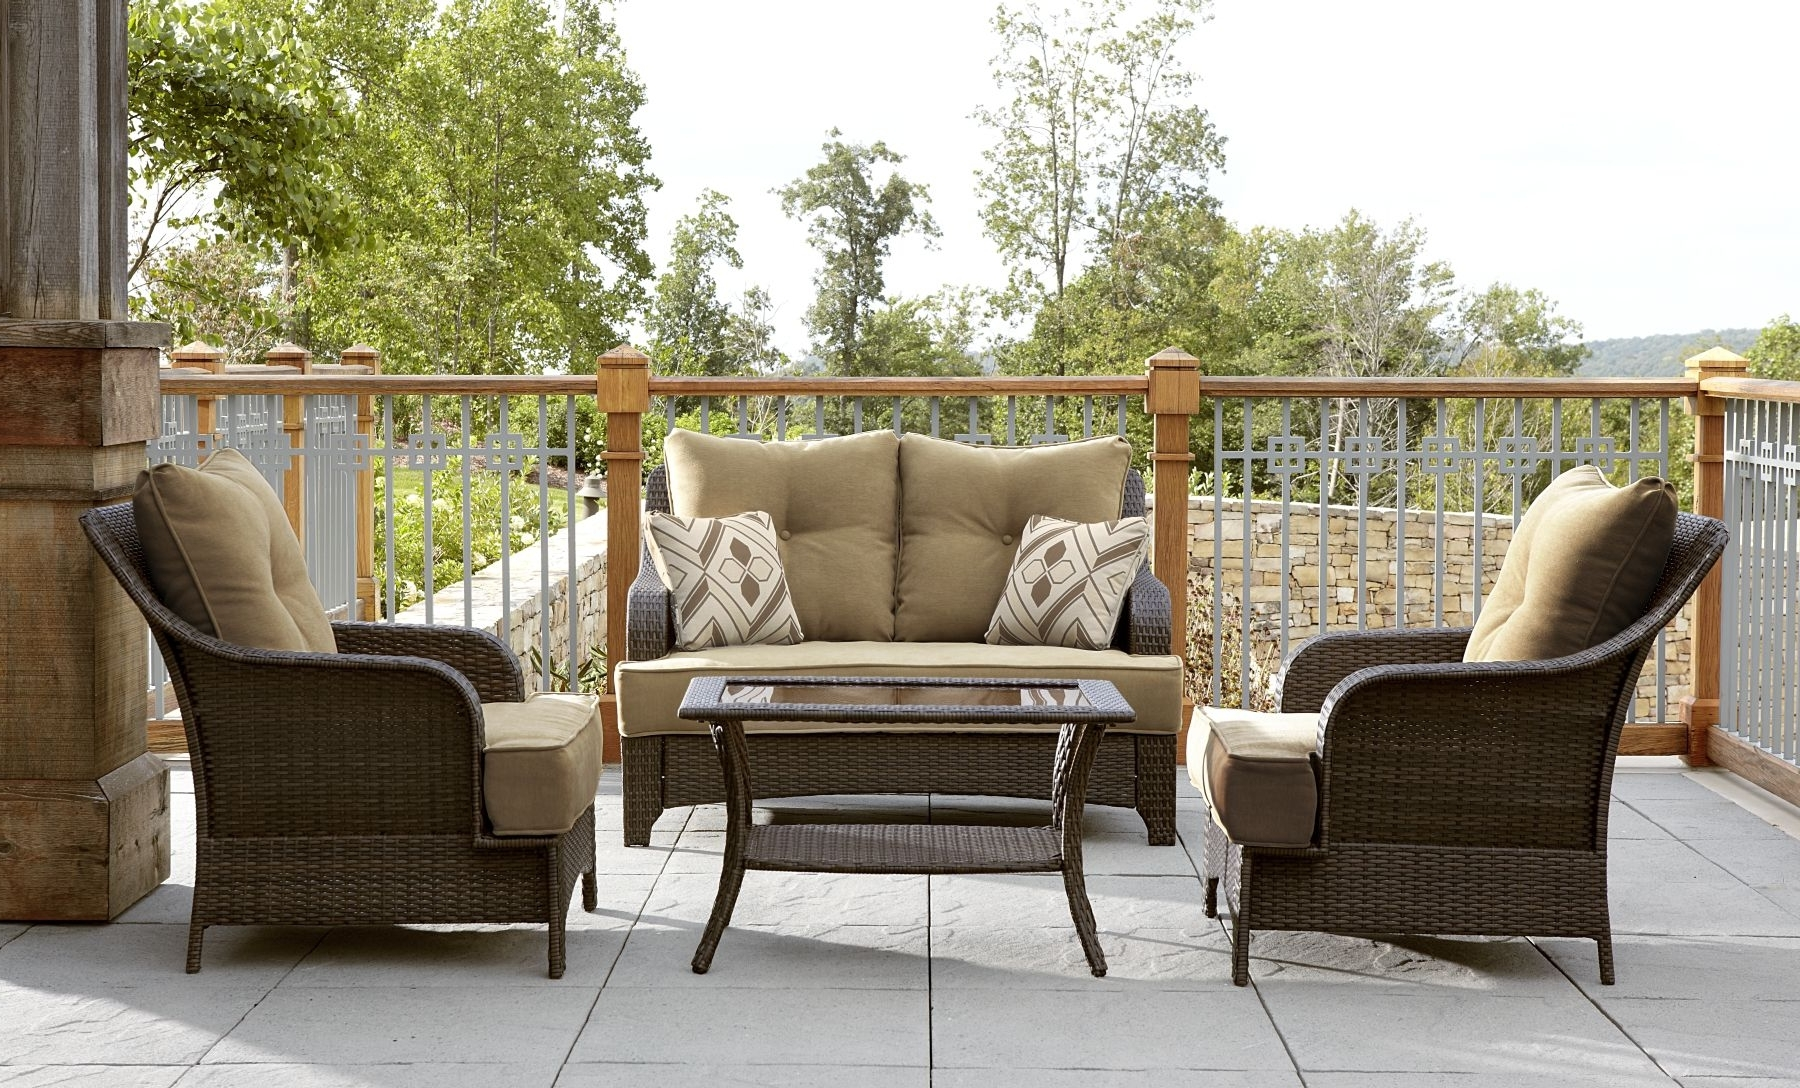 Lazy Boy Patio Conversation Sets Pertaining To 2019 Patio : Lazy Boy Patio Furniture Cushion Replacements Covers (View 9 of 20)